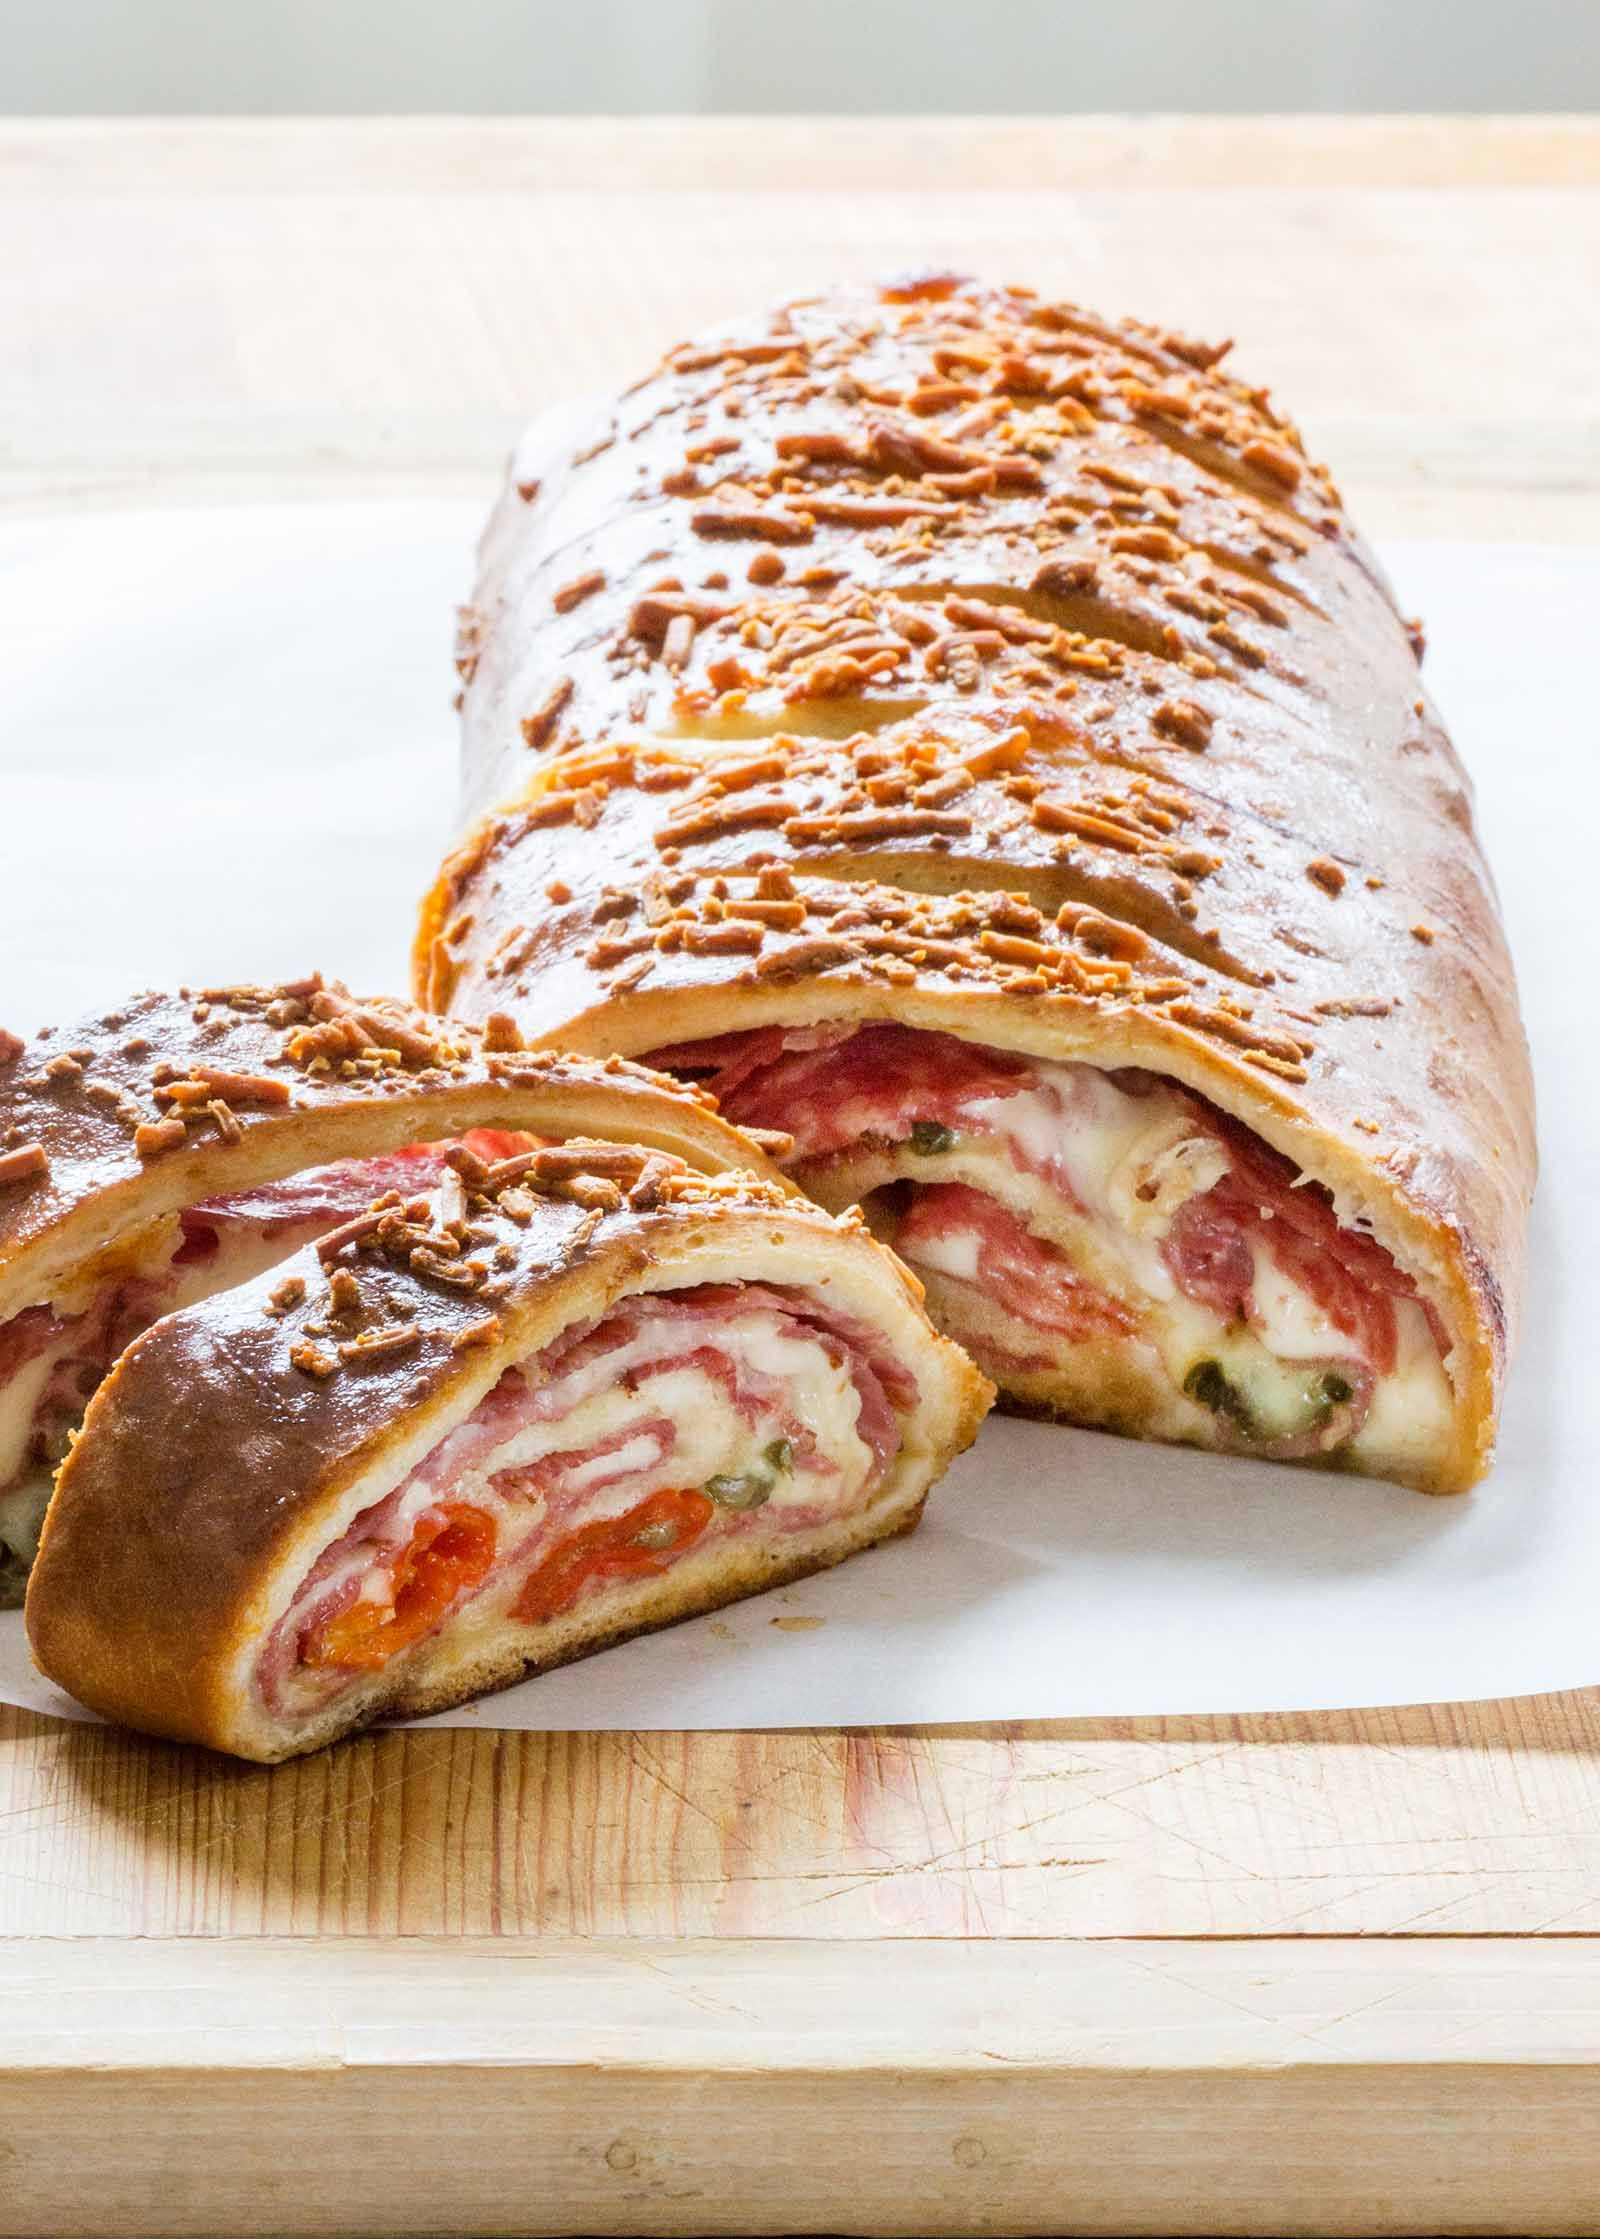 This meat and cheese-stuffed stromboli will feed a crowd! Ham, salami, provolone, and mozzarella get rolled up in pizza dough. Easy to make, easy to share. #Stromboli #ItalianFood #Dinner #Cheesy #simplyrecipes